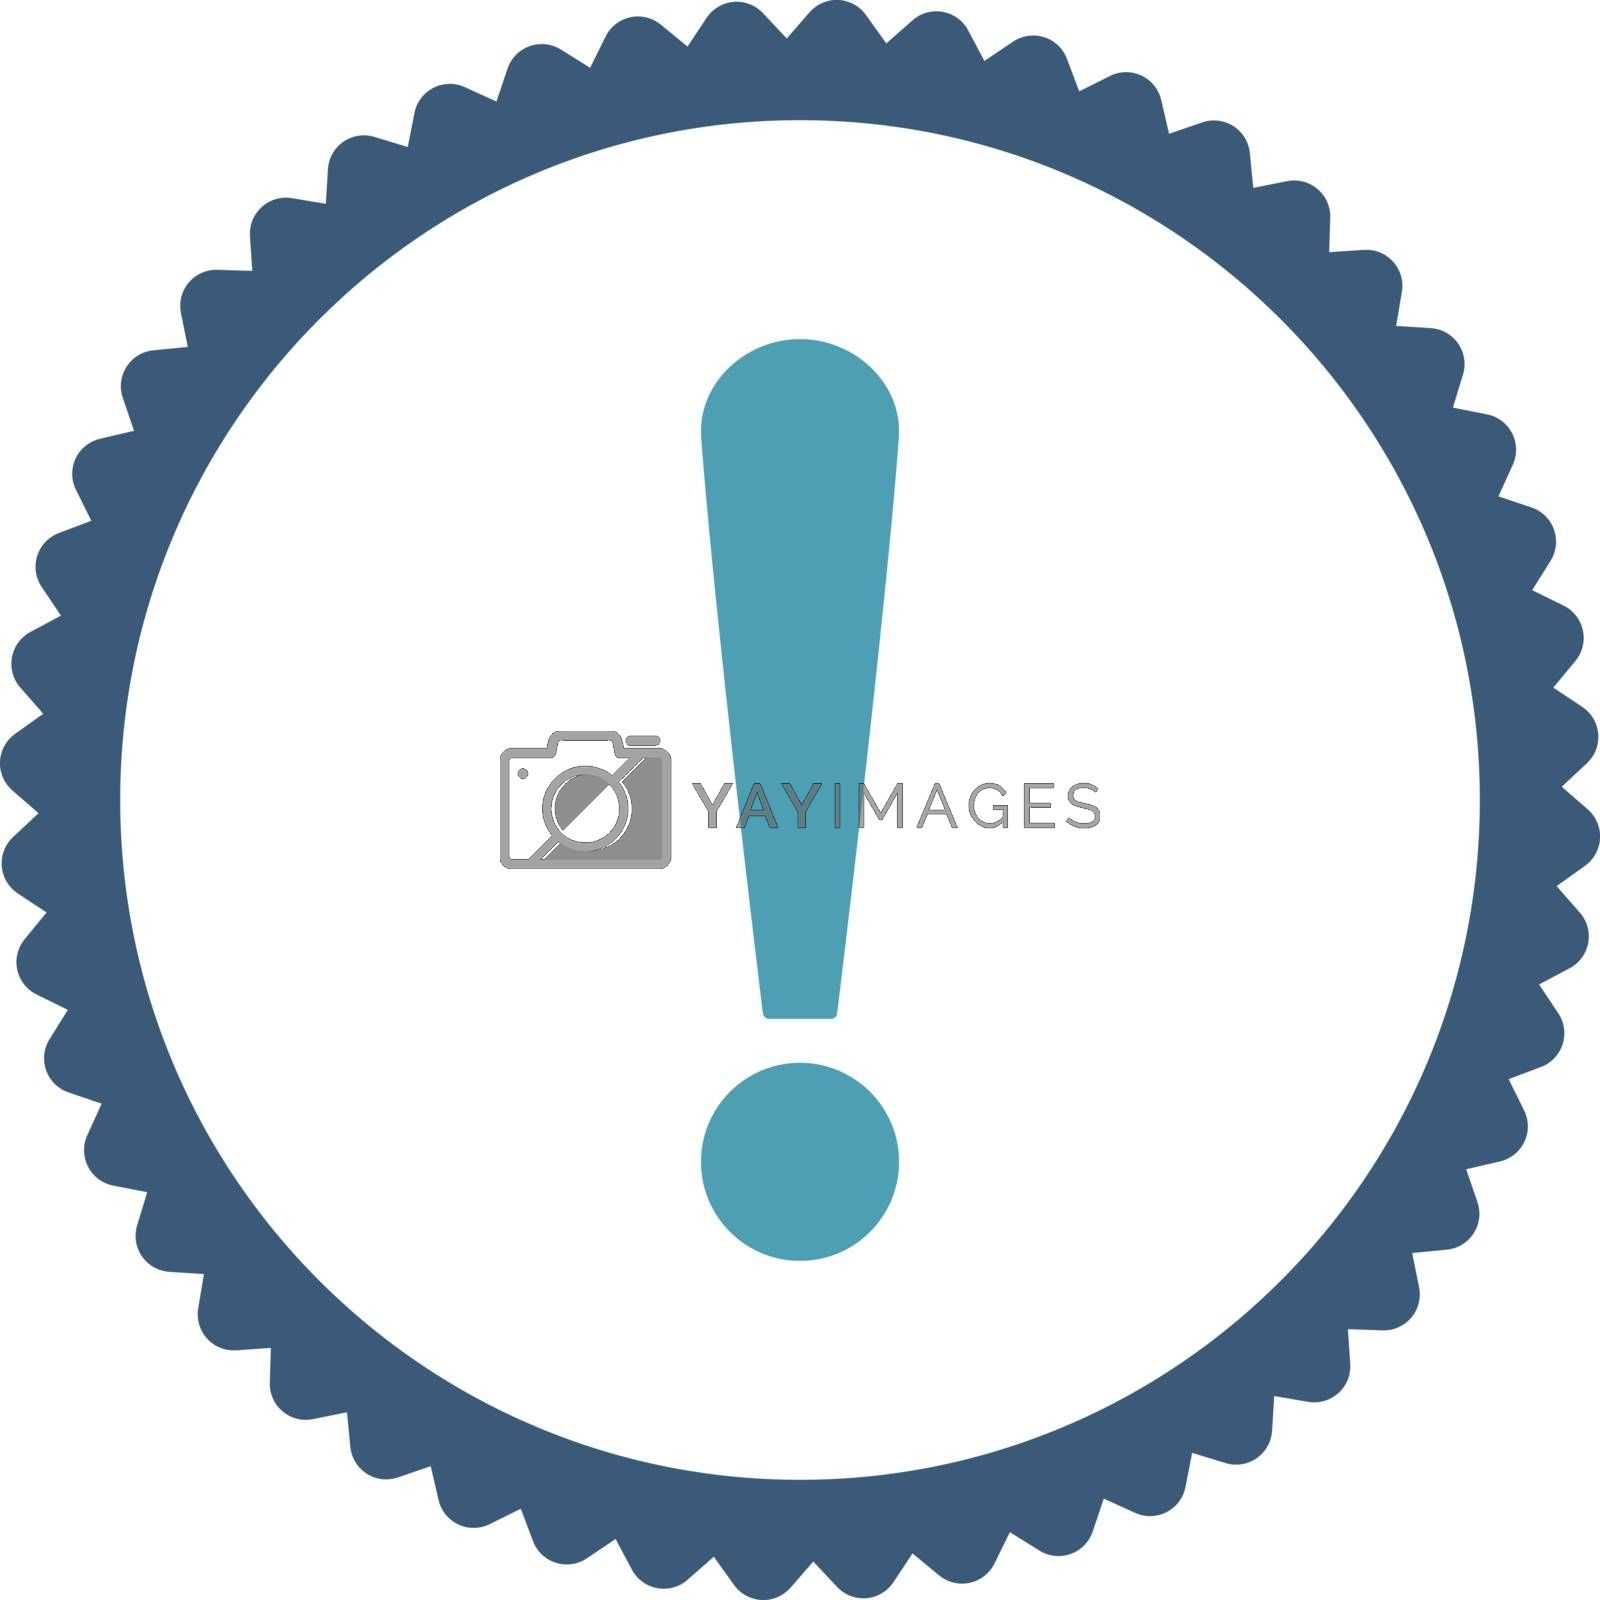 Exclamation Sign flat cyan and blue colors round stamp icon by Aha-Soft